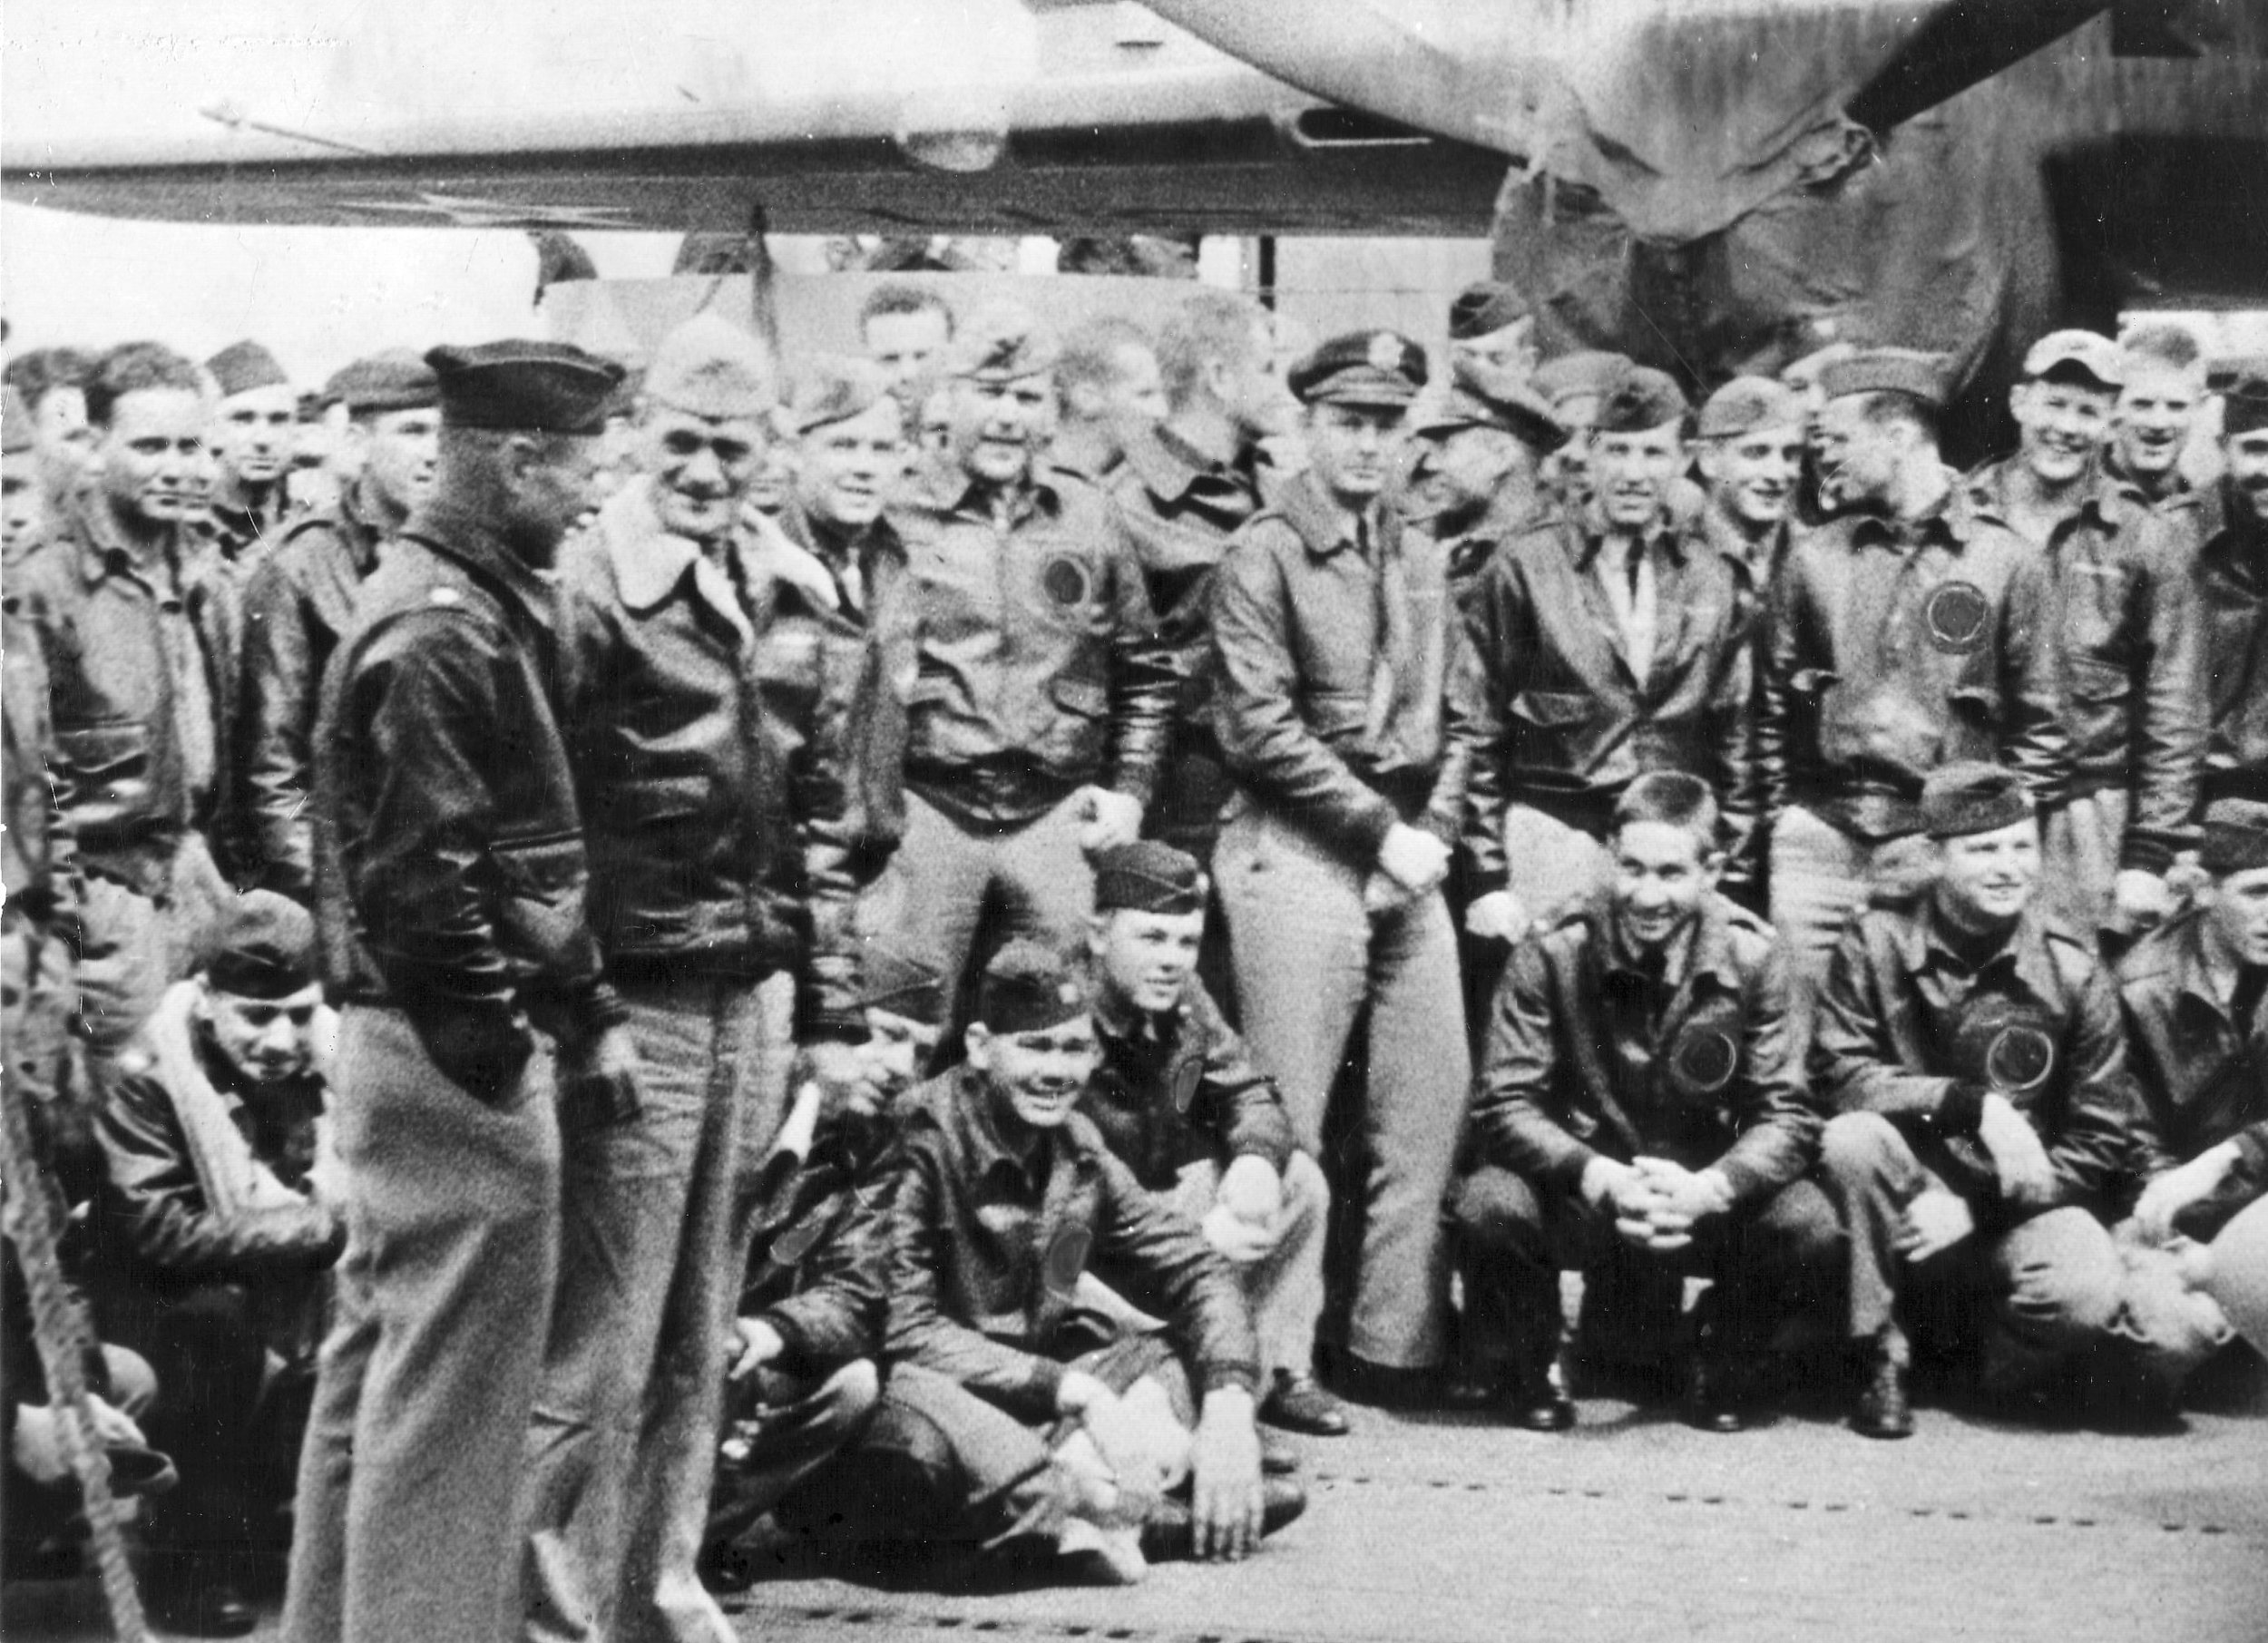 Orders in hand, Capt. Marc A. Mitscher, U.S.N., skipper of the U.S.S. Hornet (CU-8) chats with Maj. Gen. James Doolittle, U.S. Army. Some of the 80 Army fliers who took part in the historic Japanese raid are pictured with the two fliers. (Wikimedia)